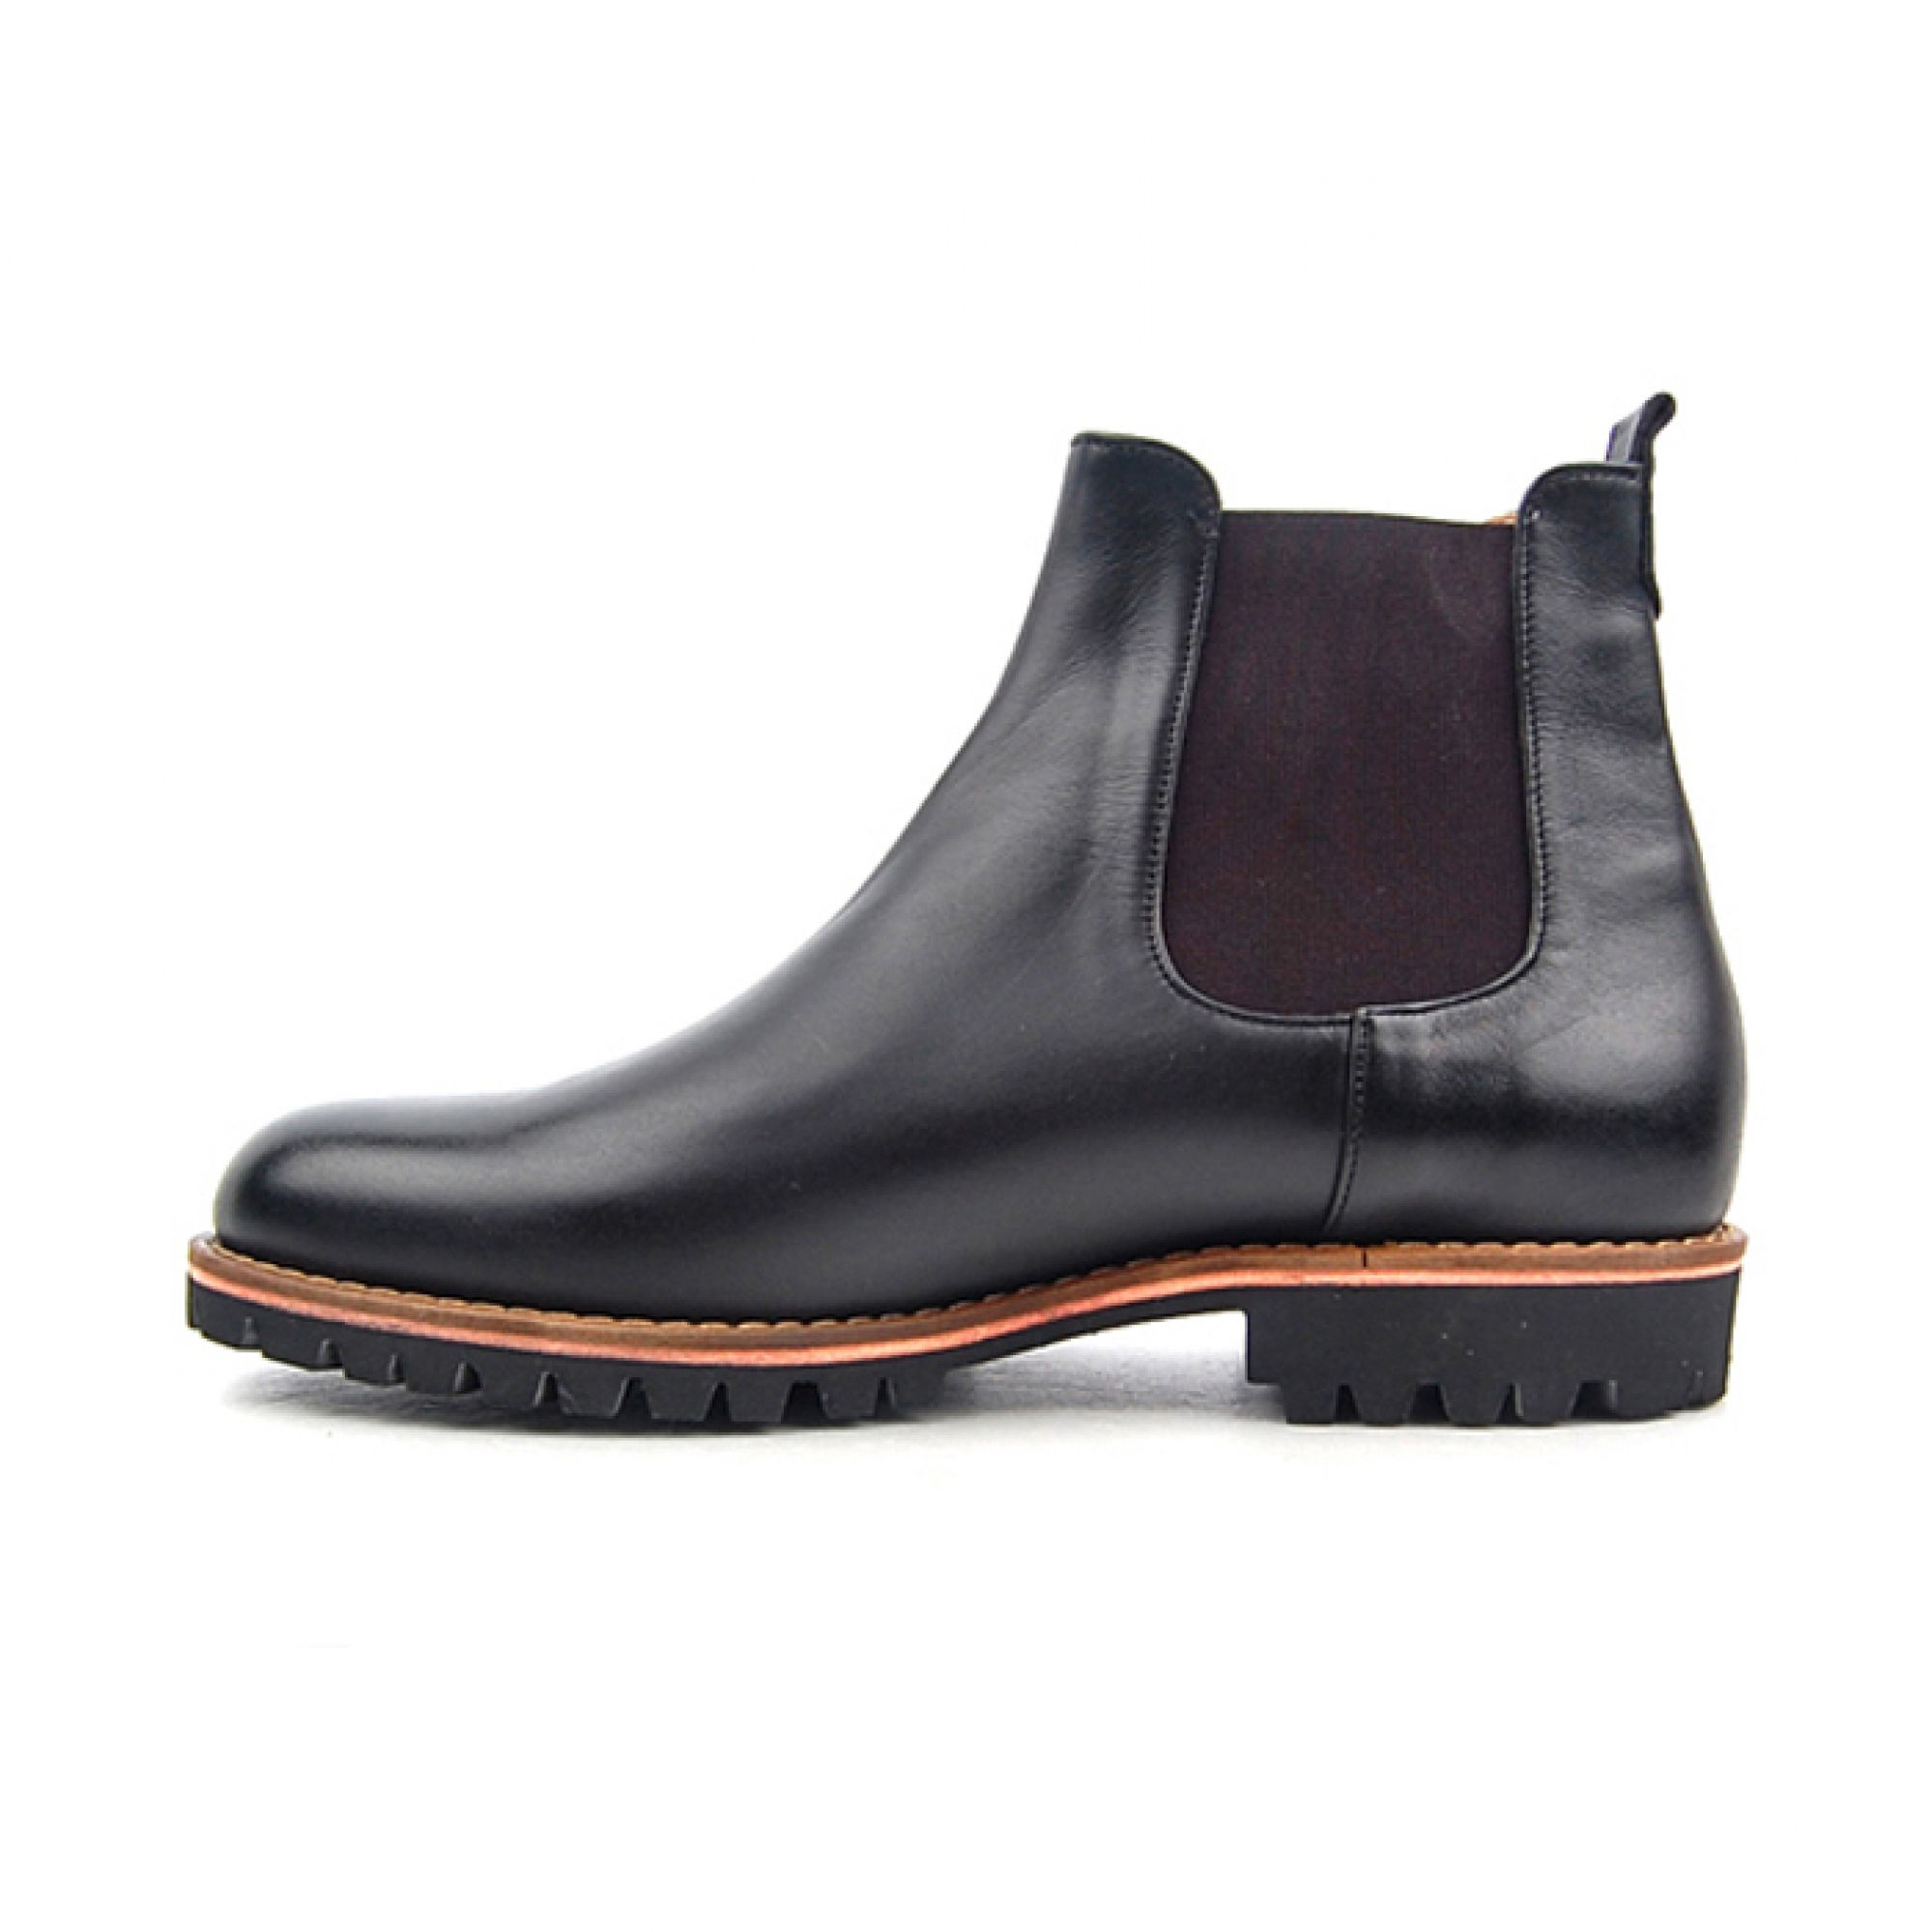 H3THECLASSIC CHELSEA BOOTS #h3theclassicl#handmadeshoes#shoes#madeinkorea#instashoes#classic#menshoes#oxford#h3theclassic#fashion#custom#handmade#mensshoes#instashoe#손신발#에이치쓰리더클래식#수제화#남성수제화#남자수제화#커스텀#남자구두#핸드메이드#신스타그램#맞춤#fashionaddict#dailystyle#instafashion#ootd#ootdmagazine#lookbook#streetchic#데일리룩